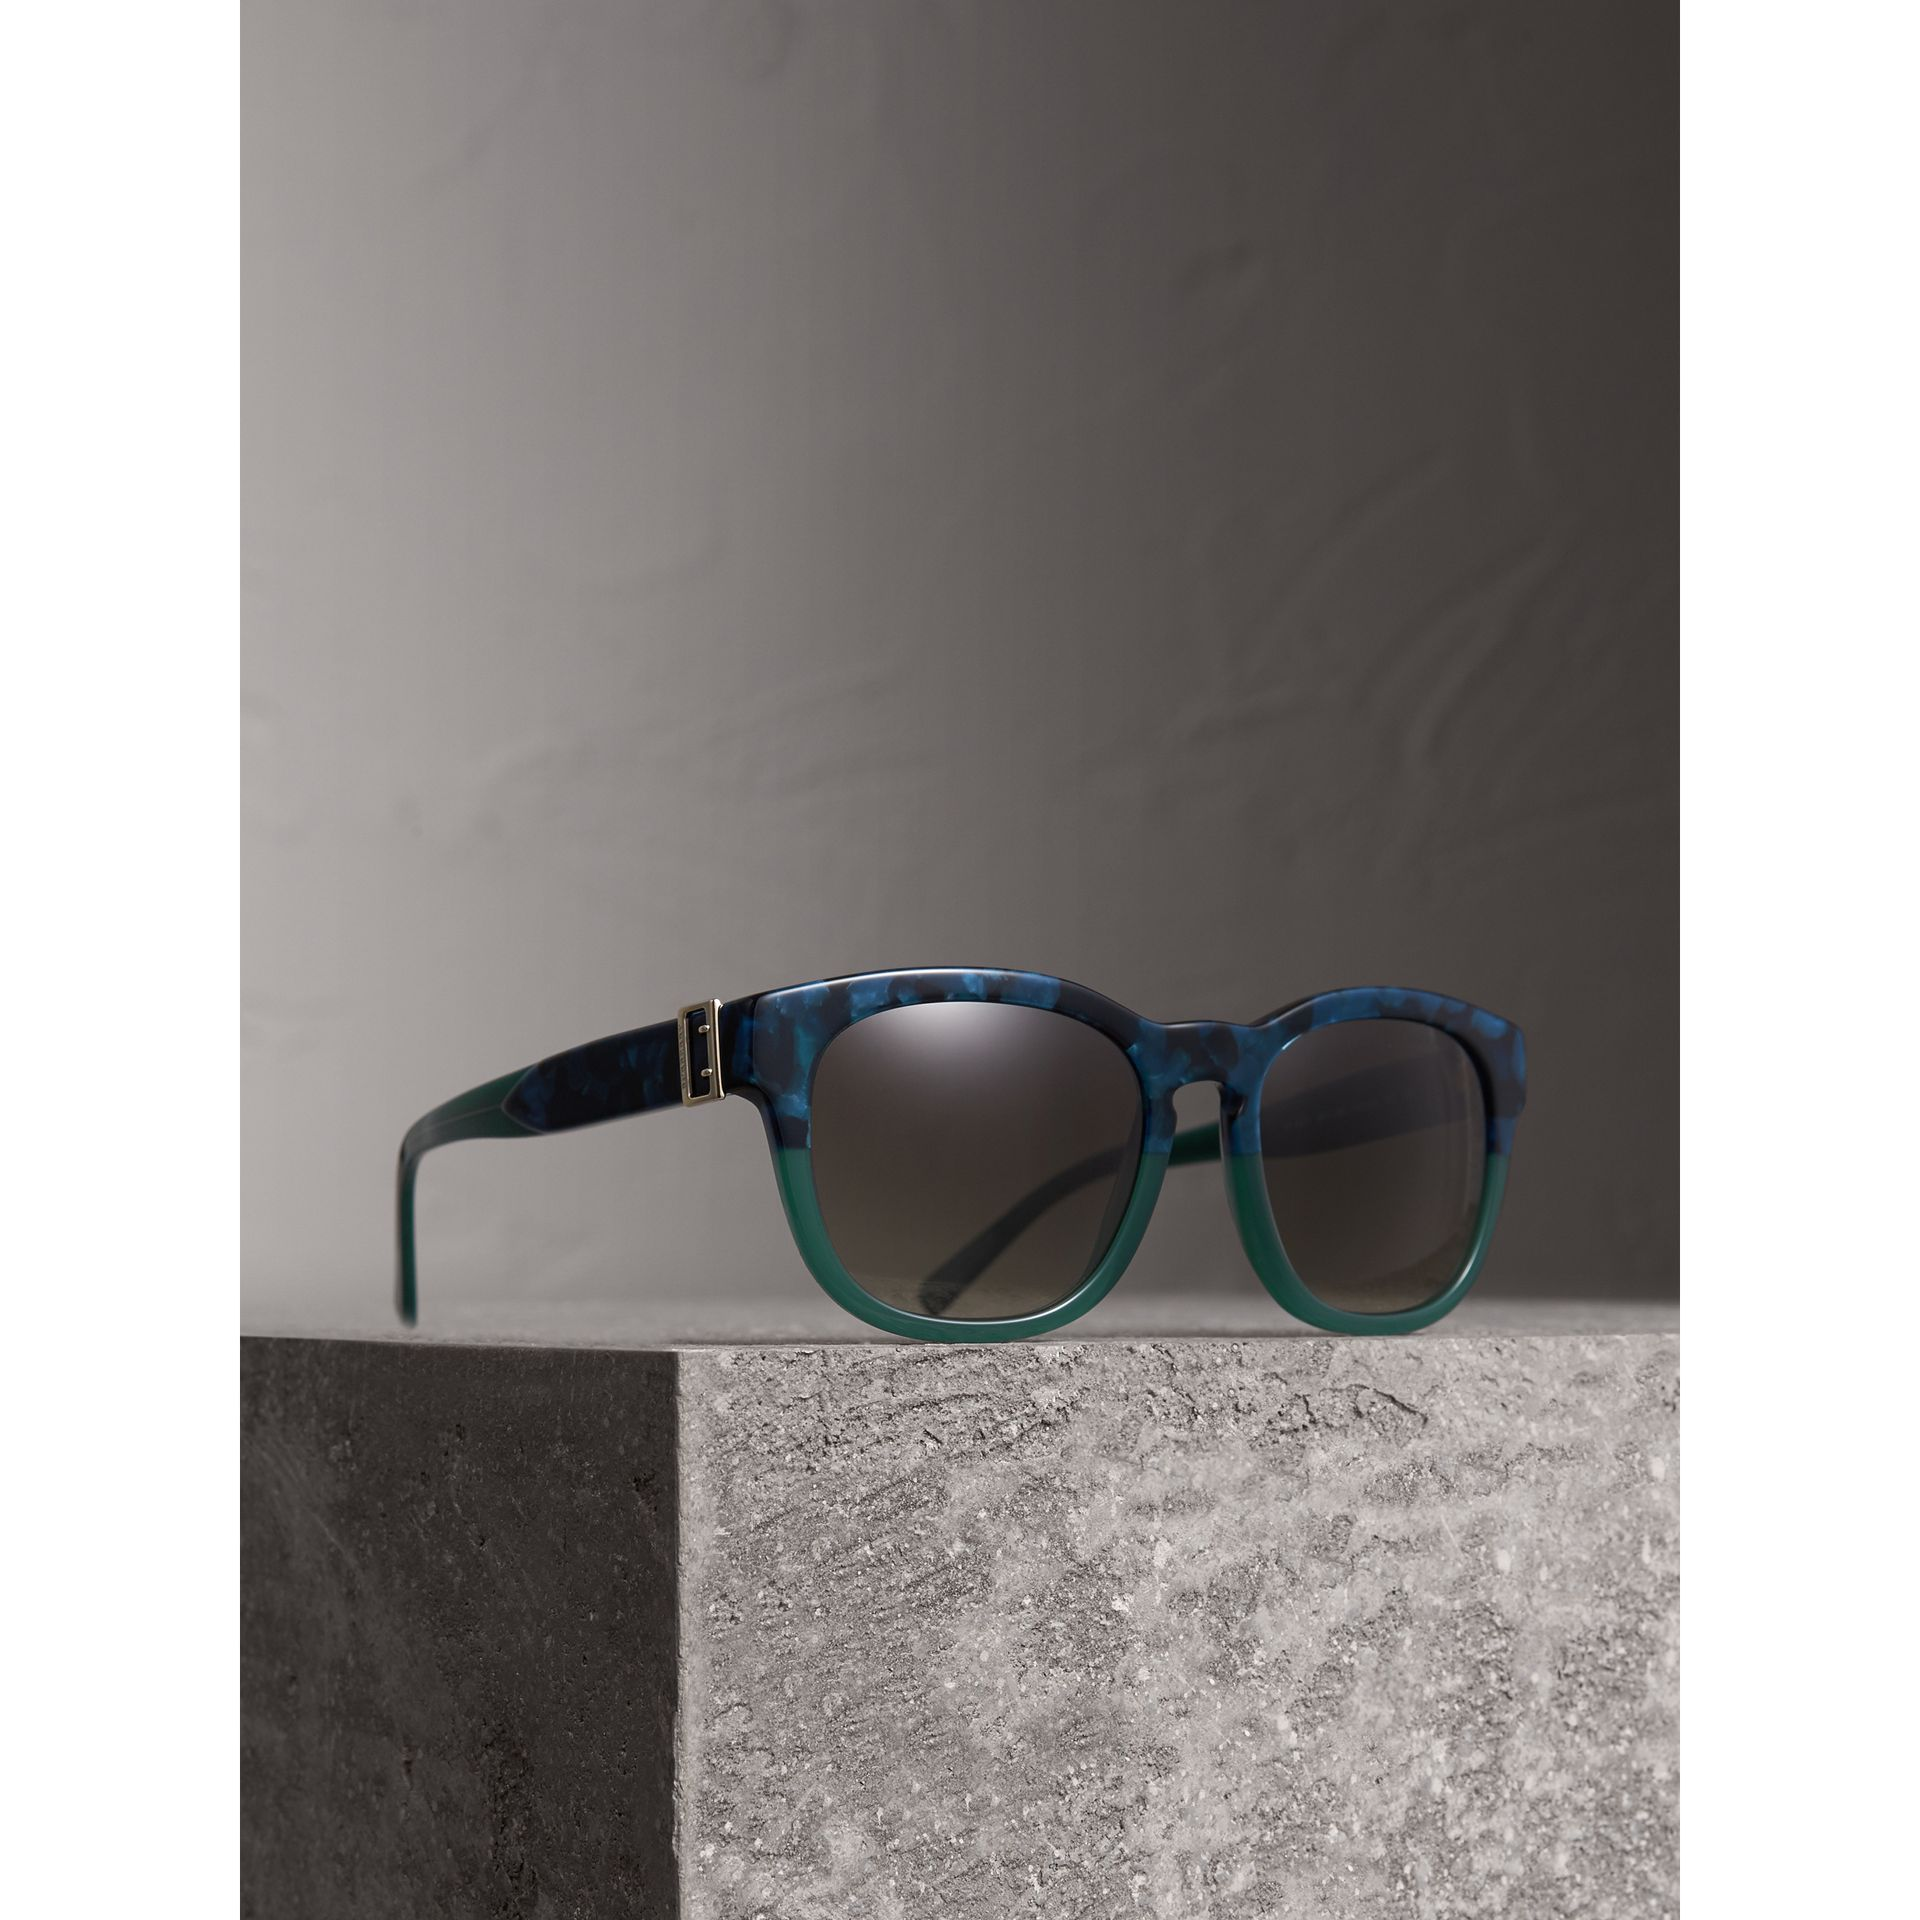 Buckle Detail Square Frame Sunglasses in Blue - Women | Burberry Canada - gallery image 1